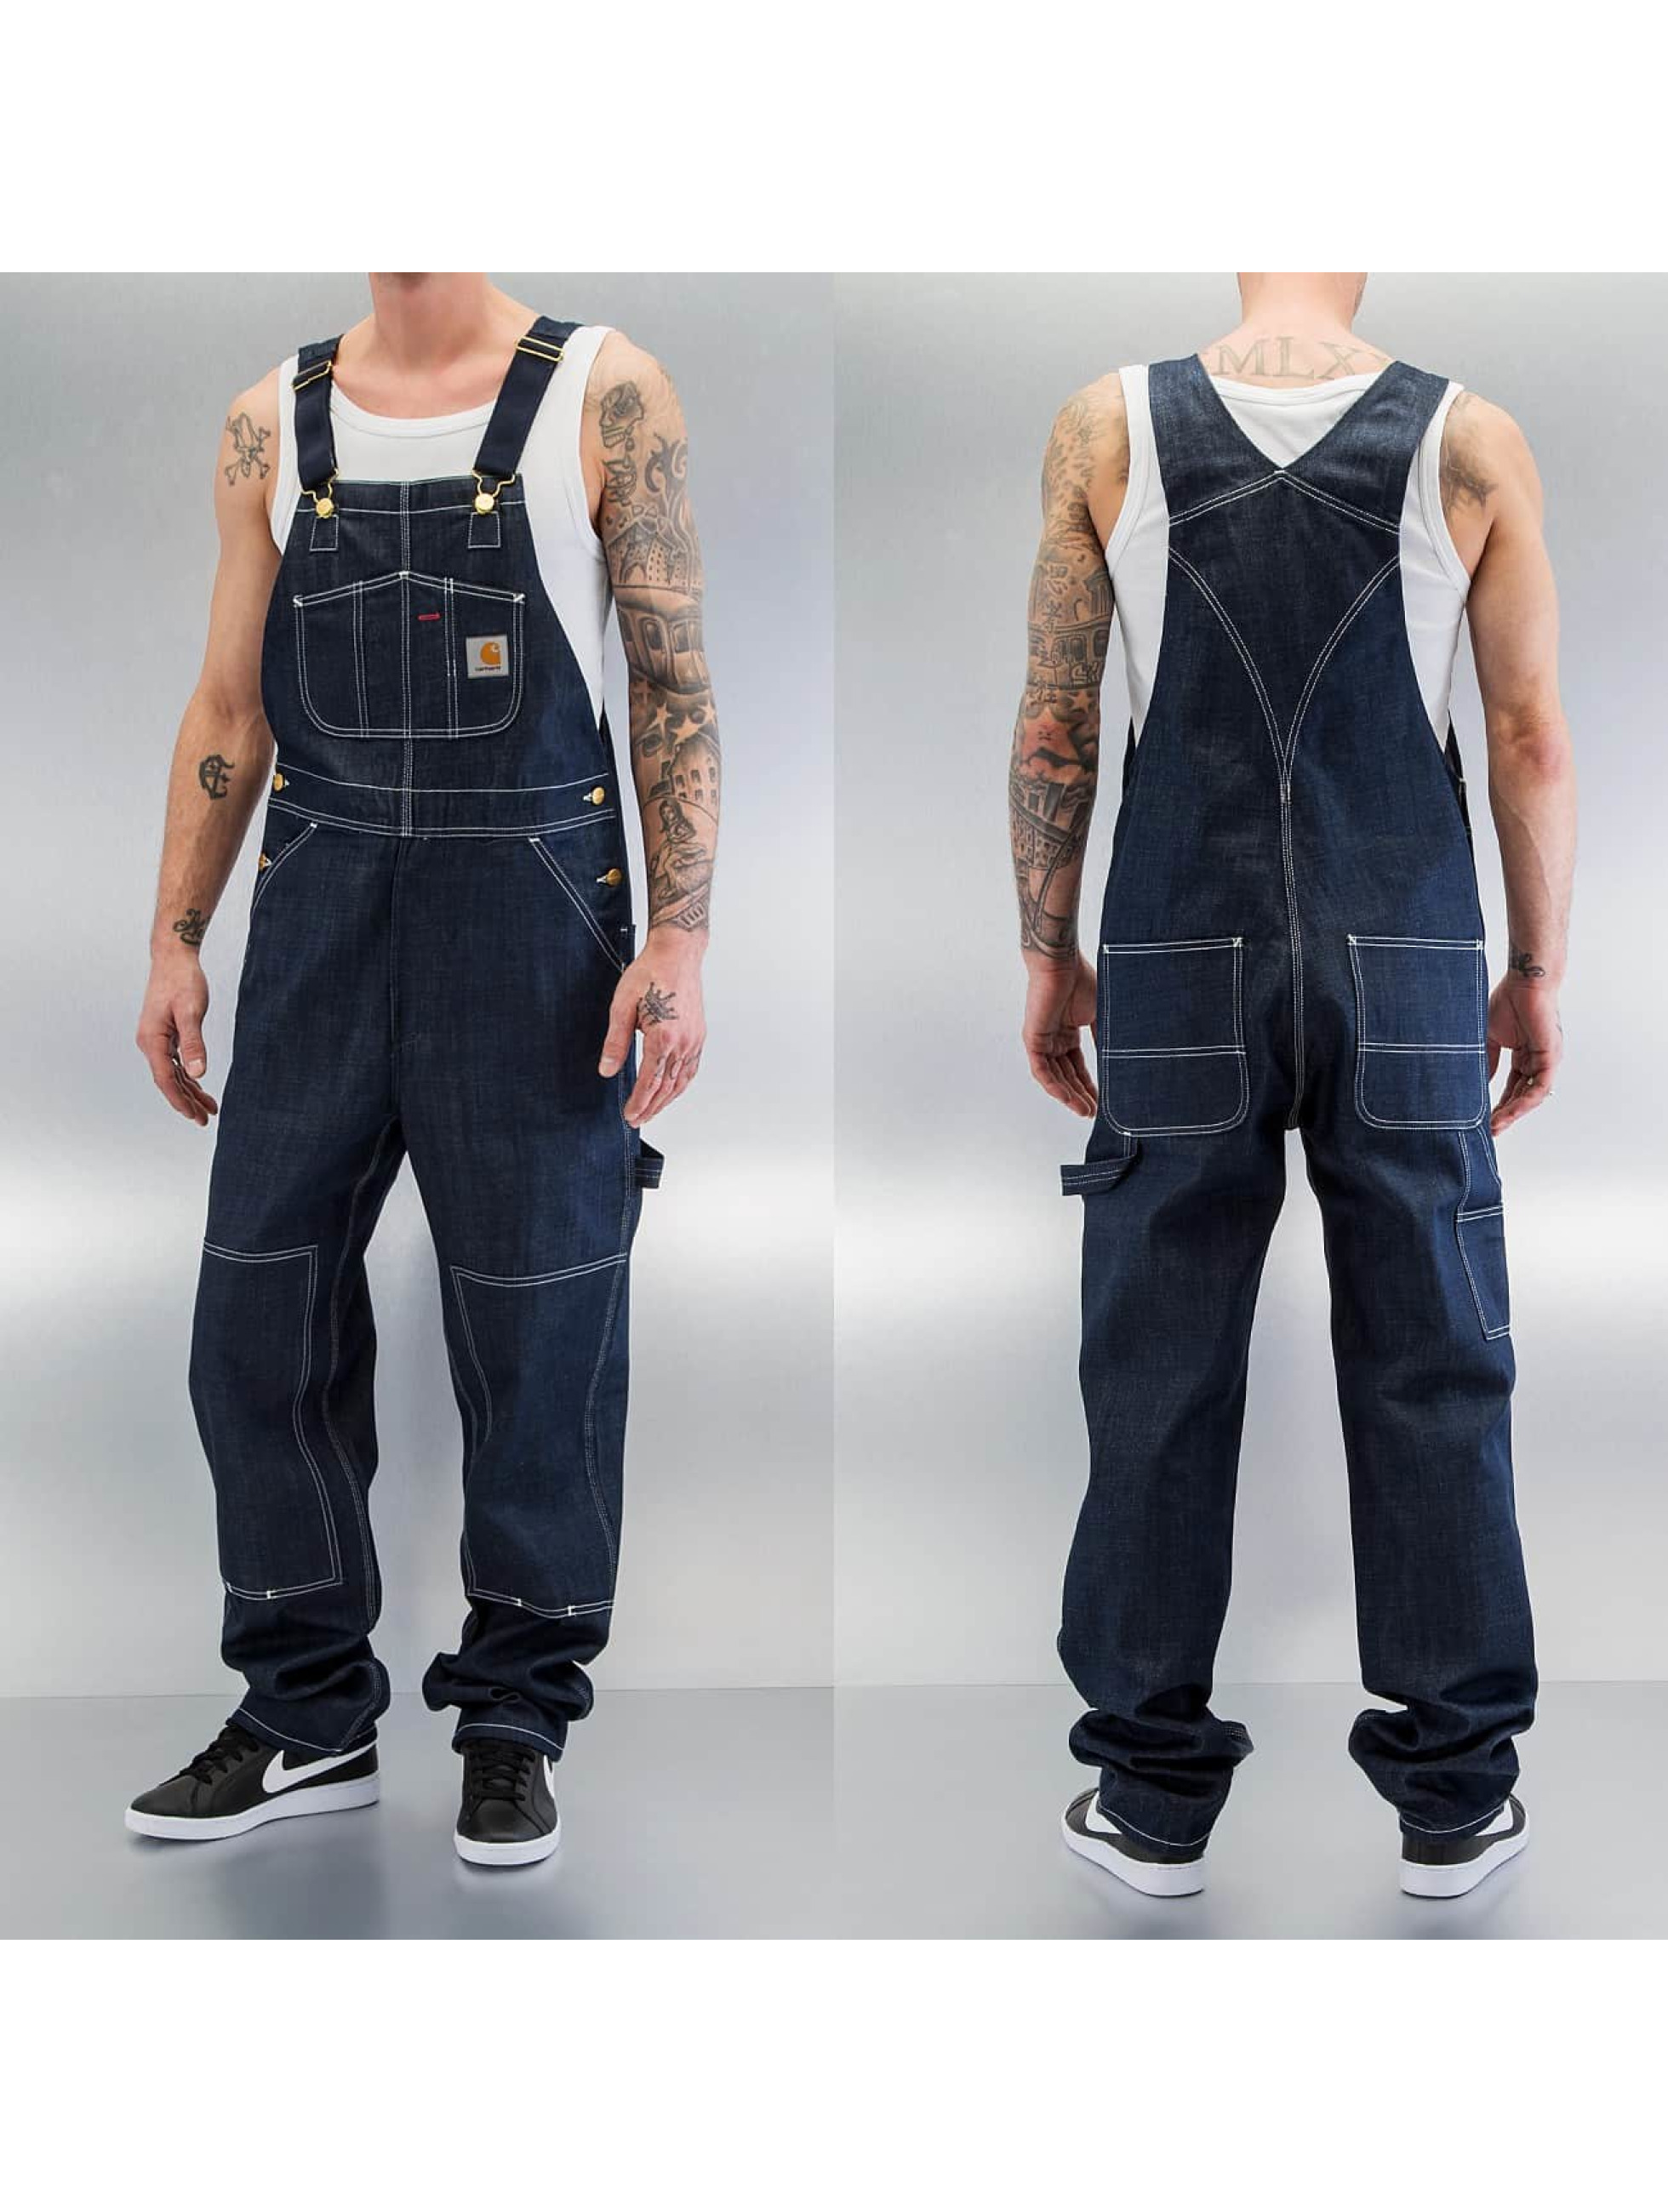 carhartt wip jeans straight fit jeans bib in blau 223922. Black Bedroom Furniture Sets. Home Design Ideas